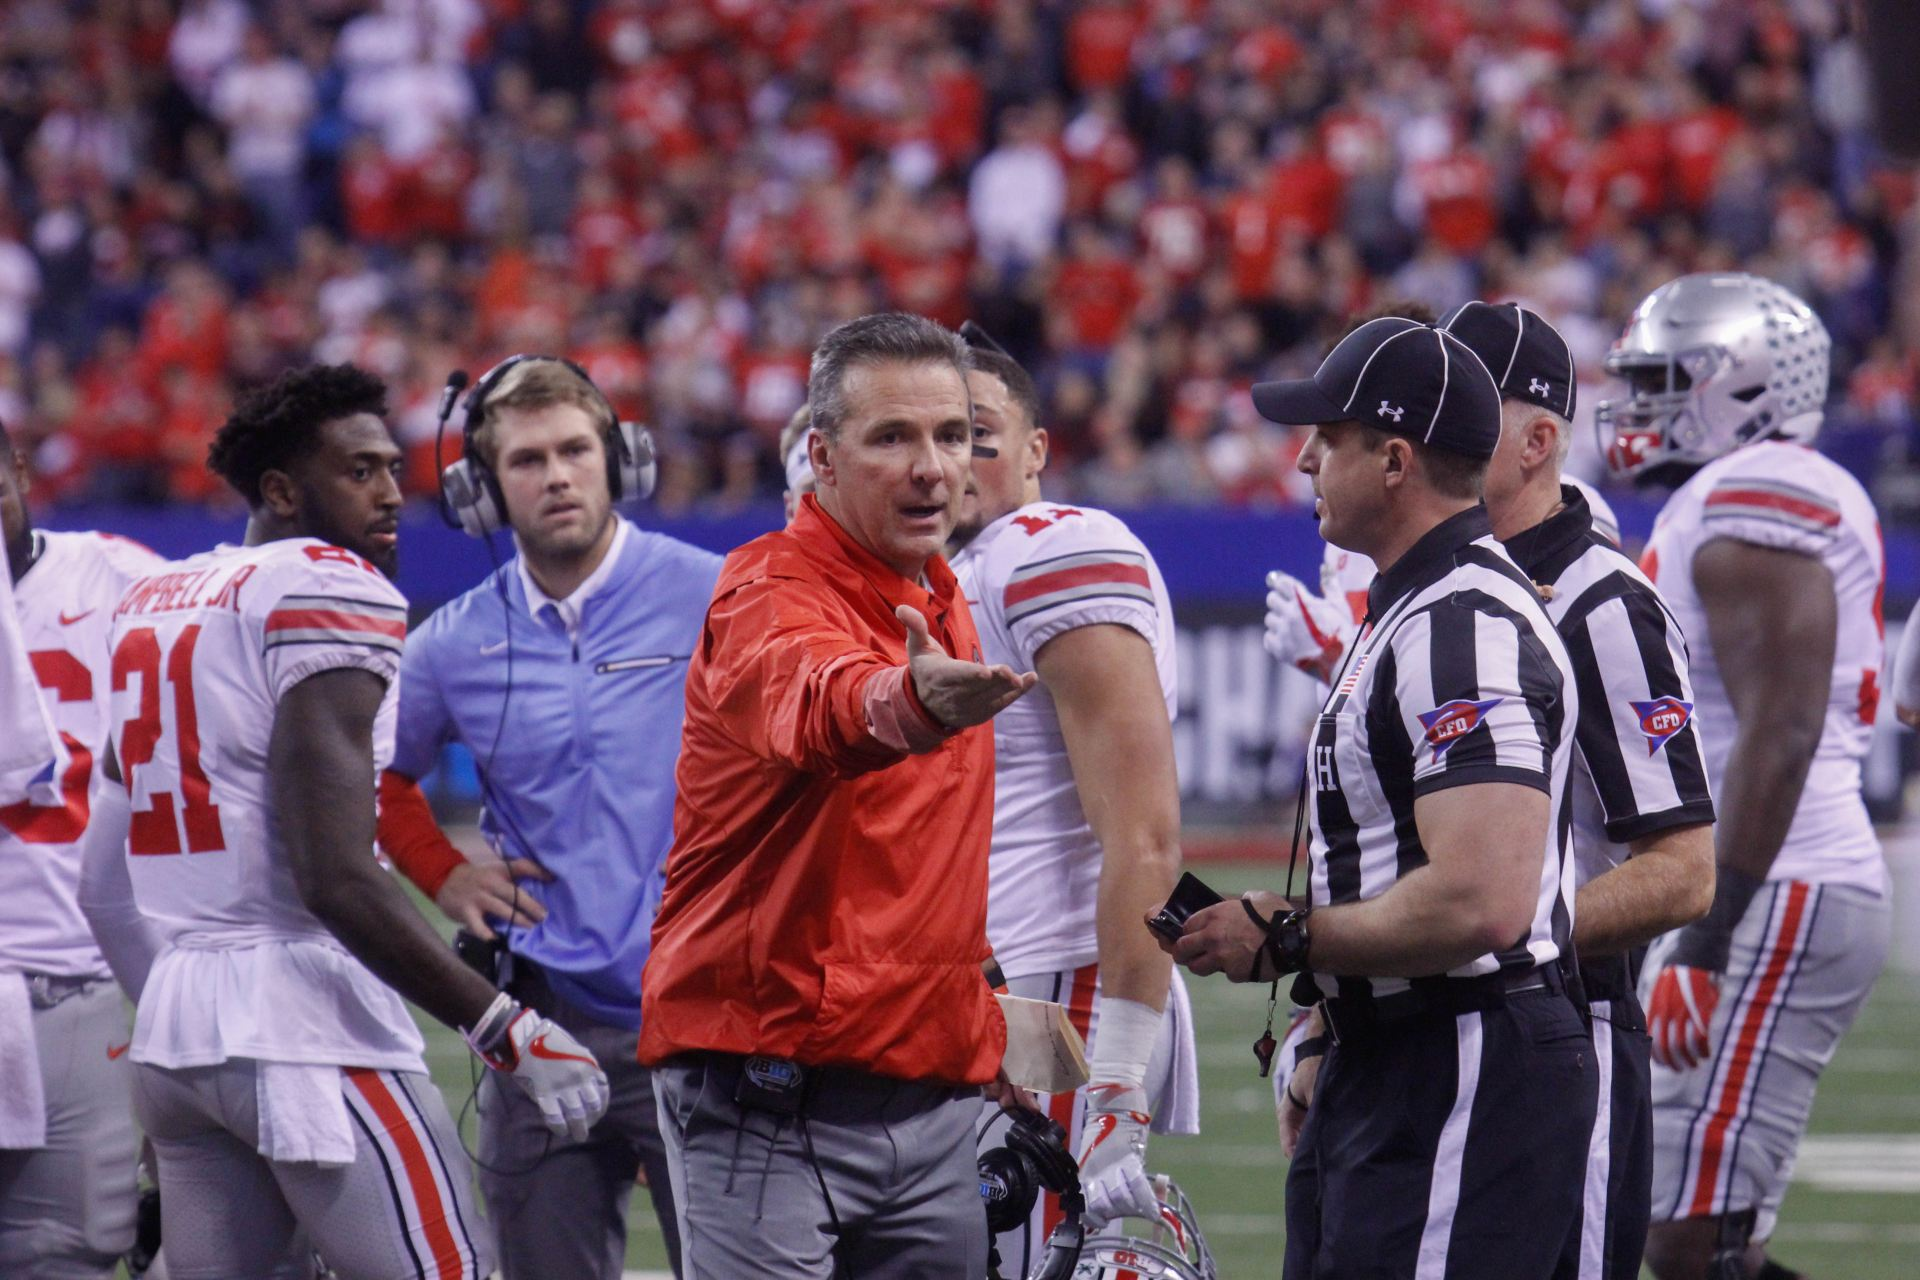 Ohio State rises to No. 5 in final rankings, but misses ...